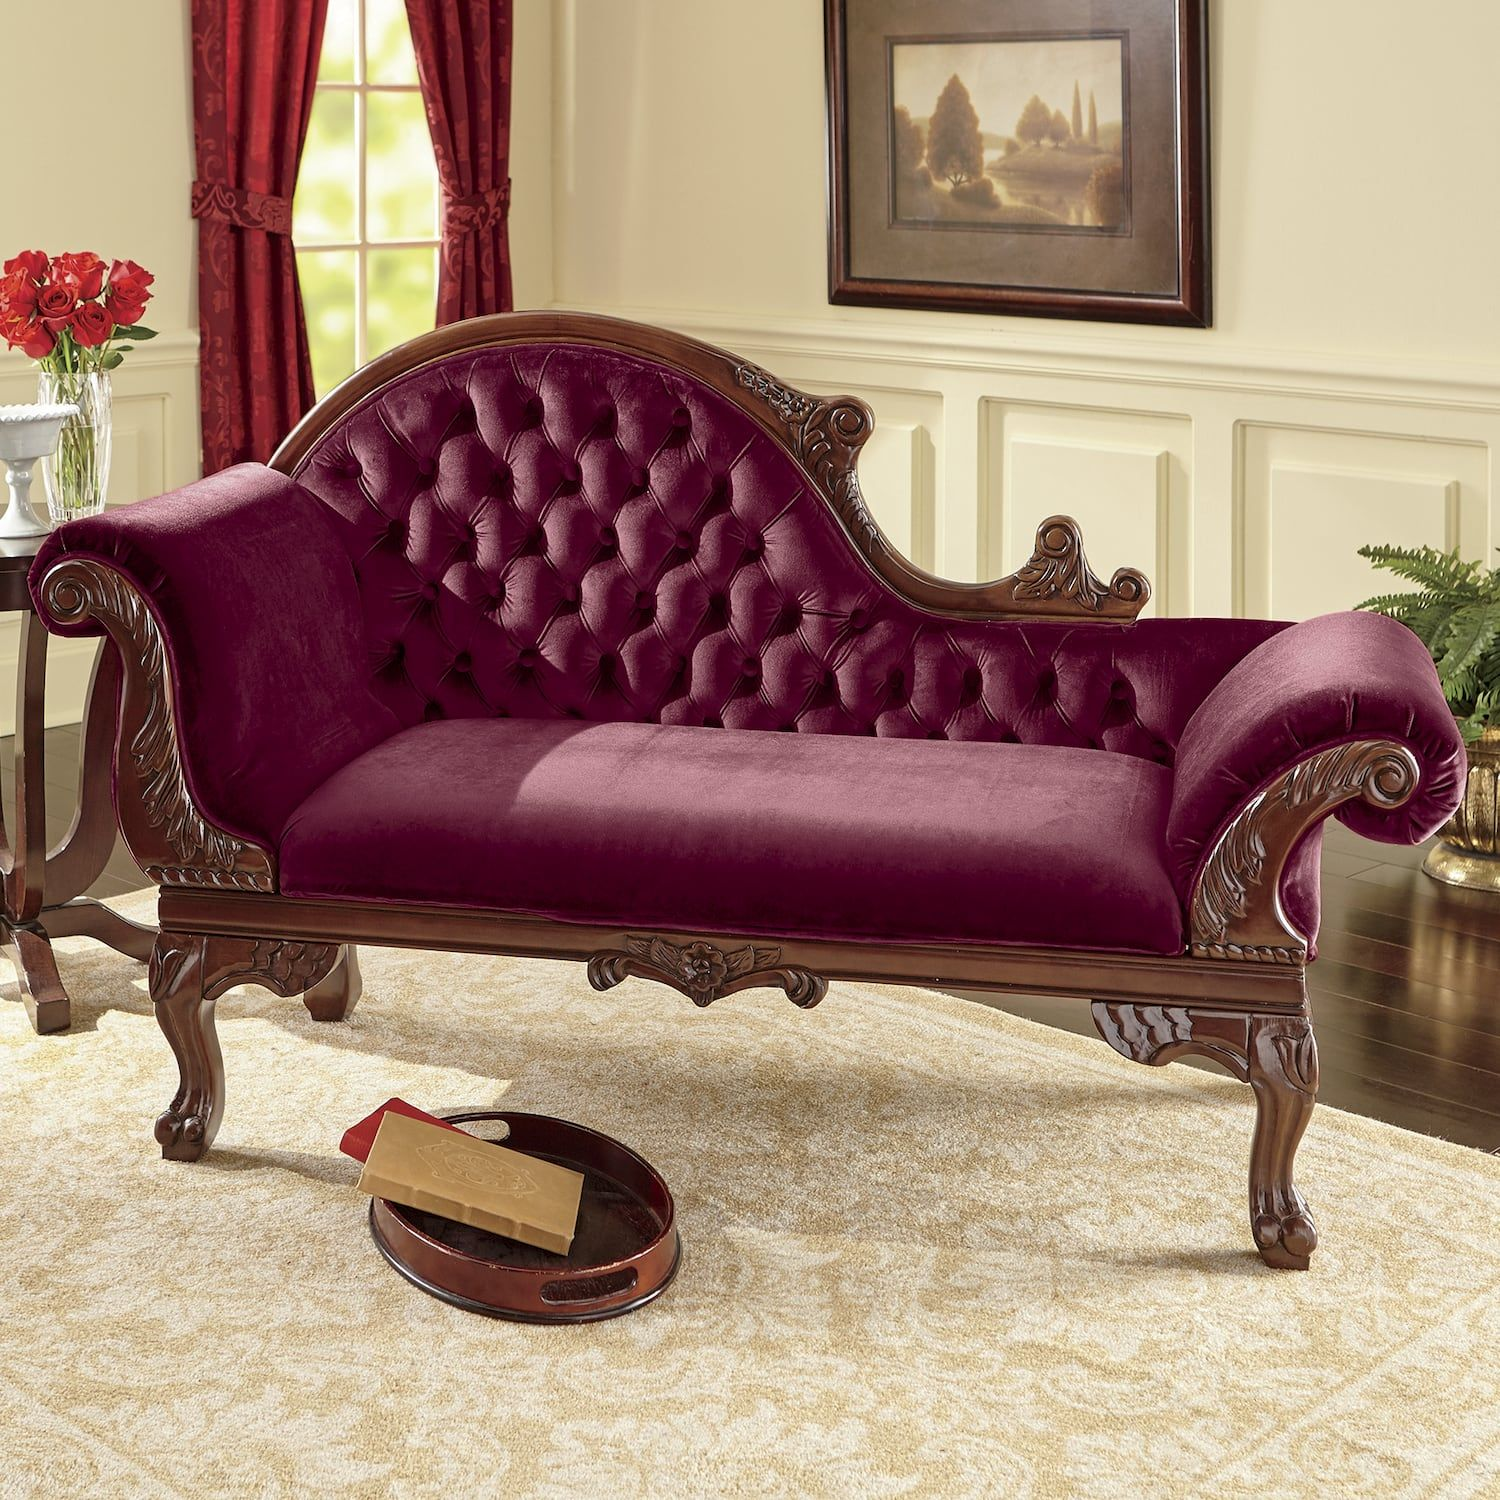 Victorian Era Chaise Montgomery Ward Classic Home Decor Victorian Furniture Classic Furniture